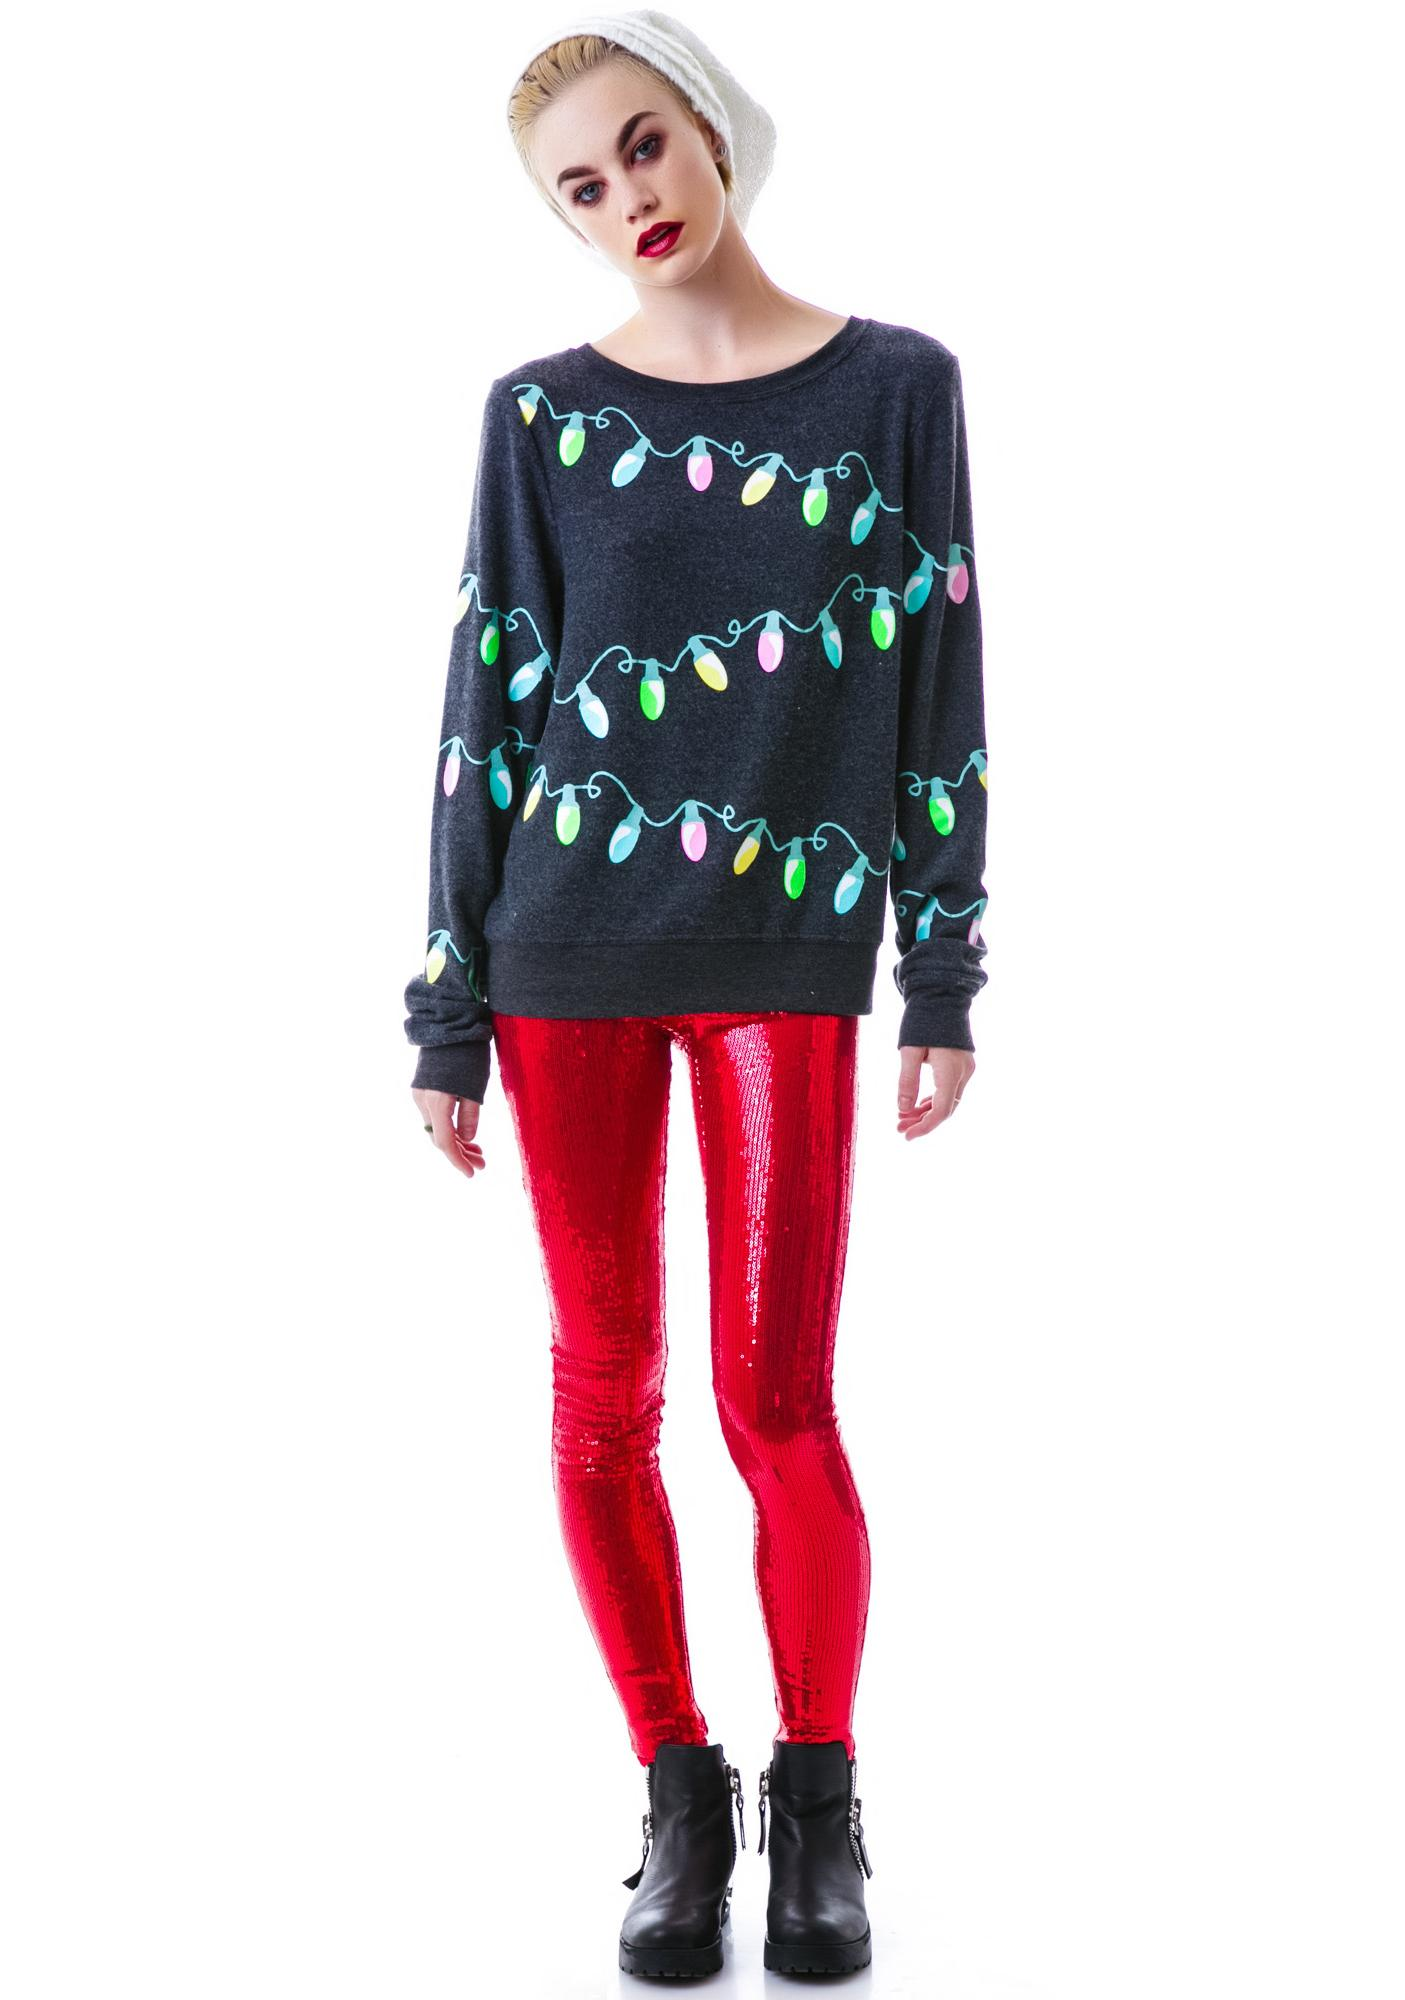 Wildfox Christmas Sweatshirt.Glowing Lights Baggy Beach Jumper